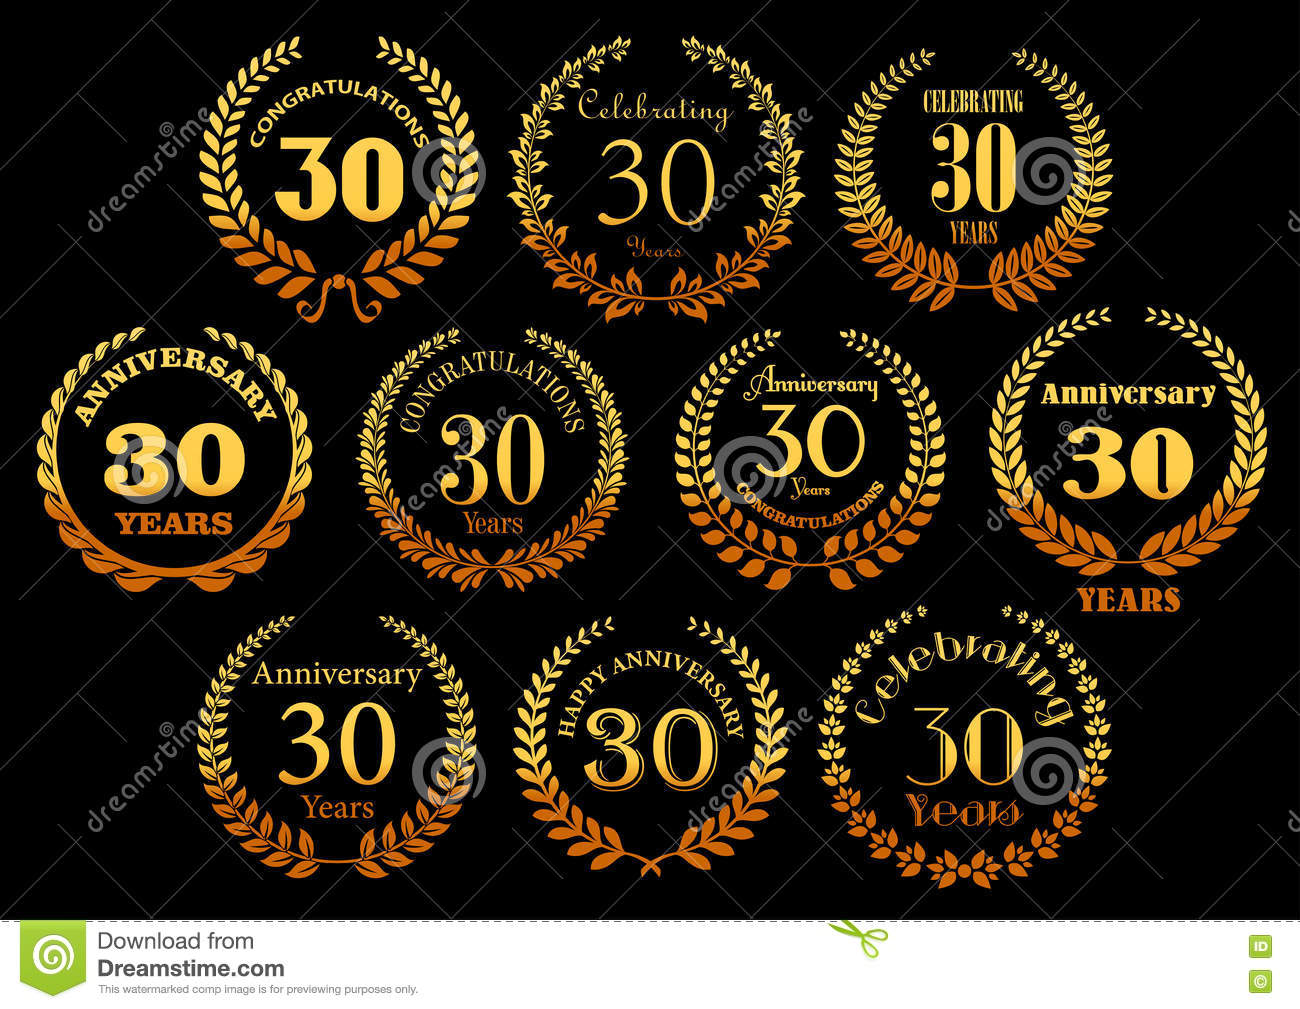 Golden laurel wreaths icons for jubilee design